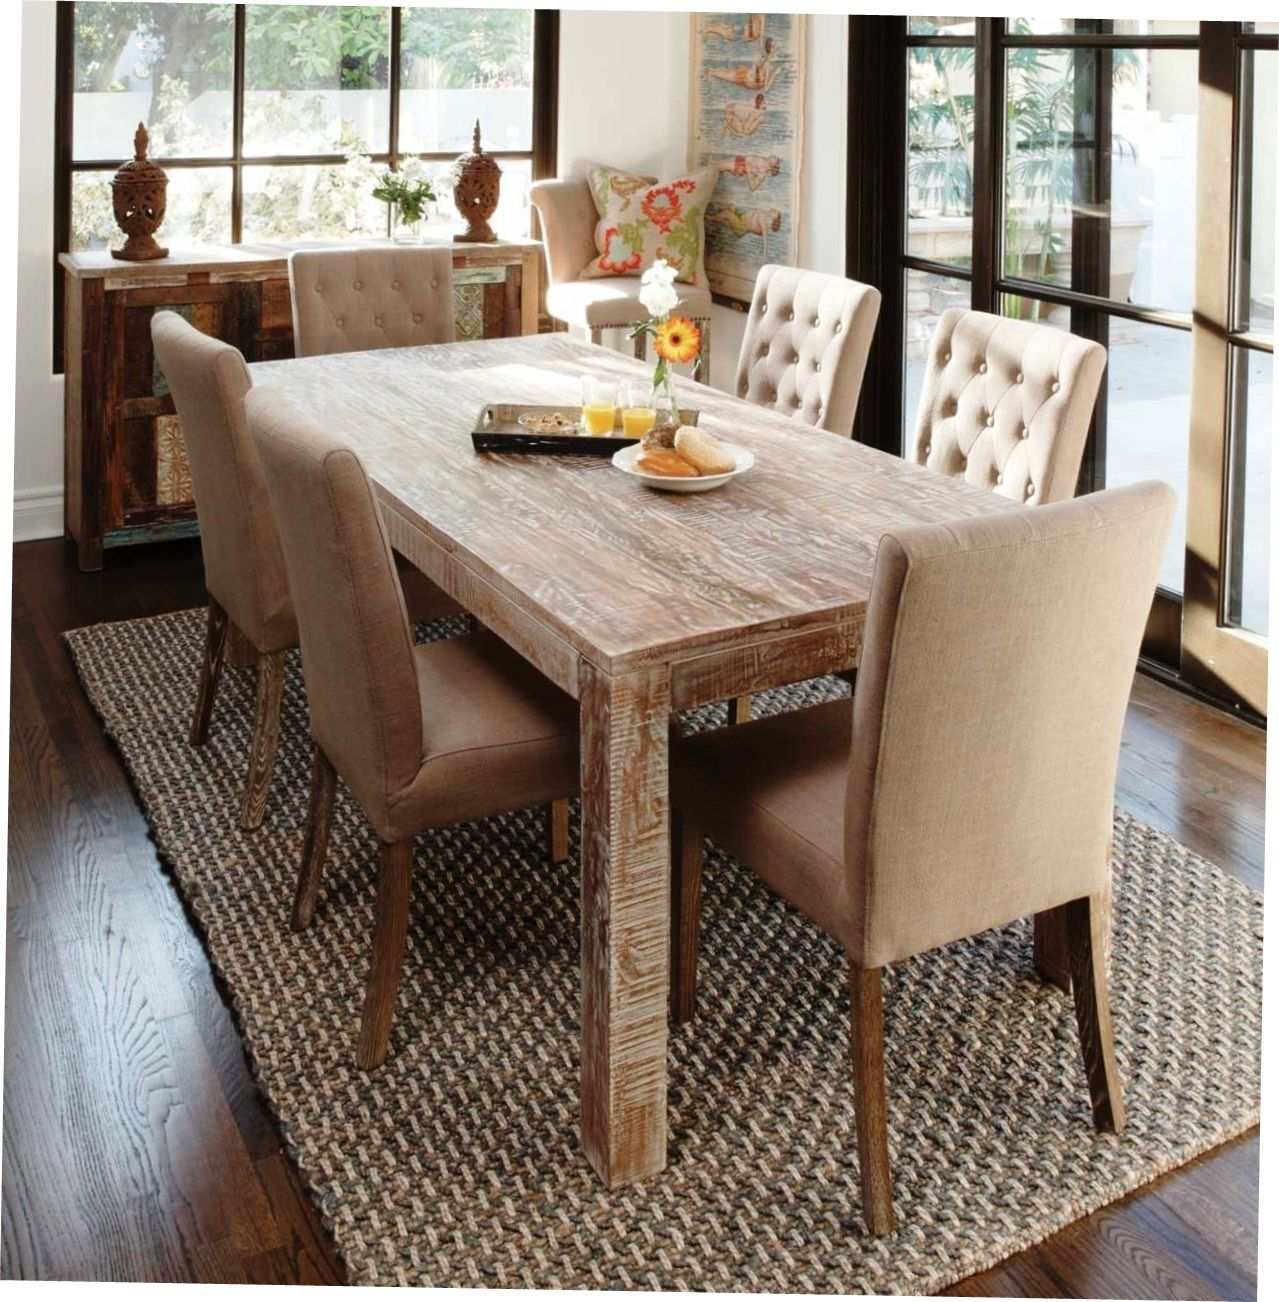 Captivating Unique Rustic Dining Room Furniture Sets #interiors